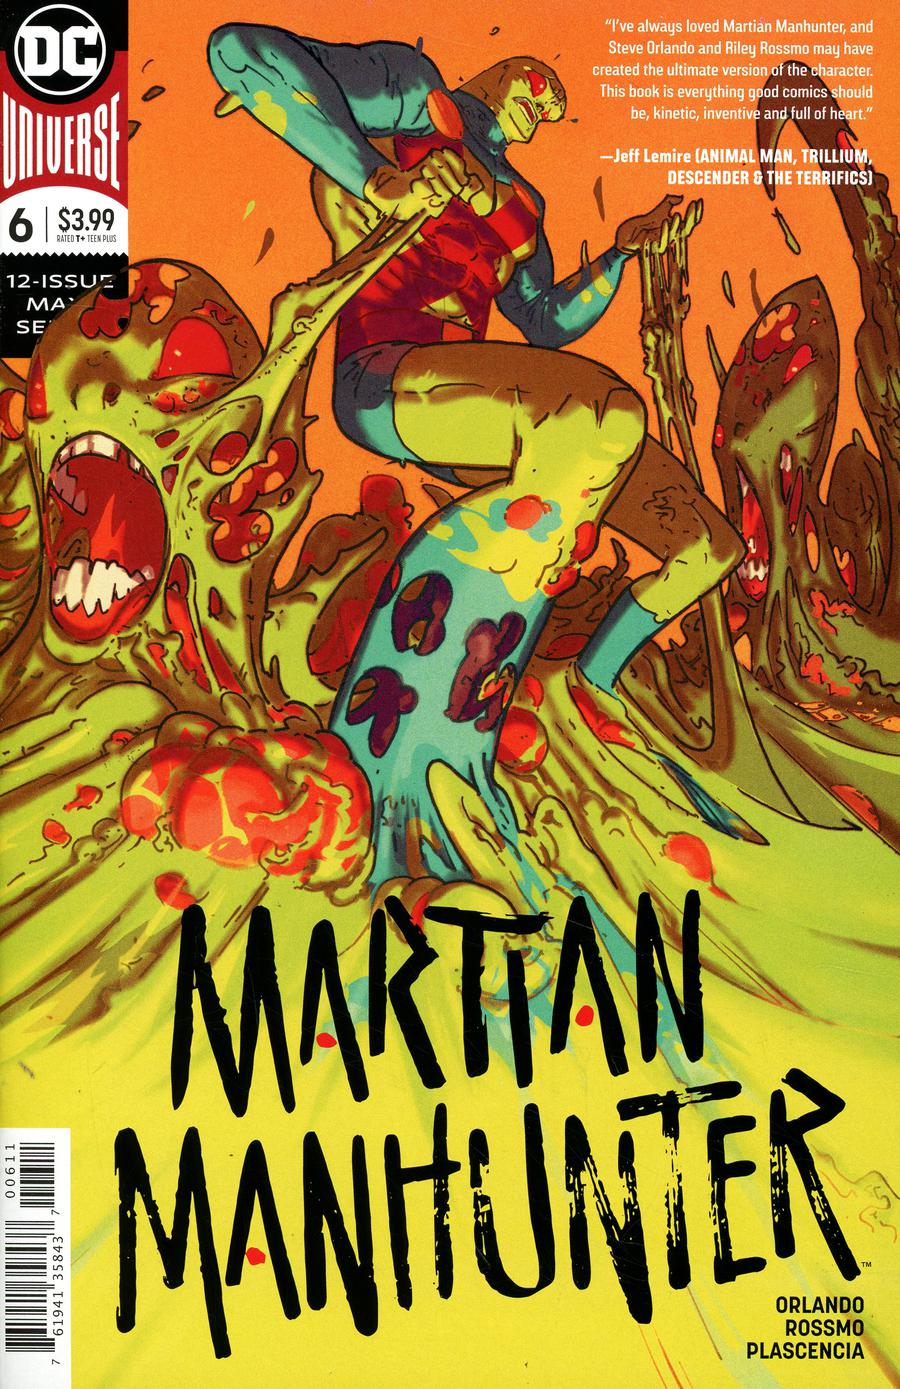 Martian Manhunter Vol 5 #6 Cover A Regular Riley Rossmo Cover